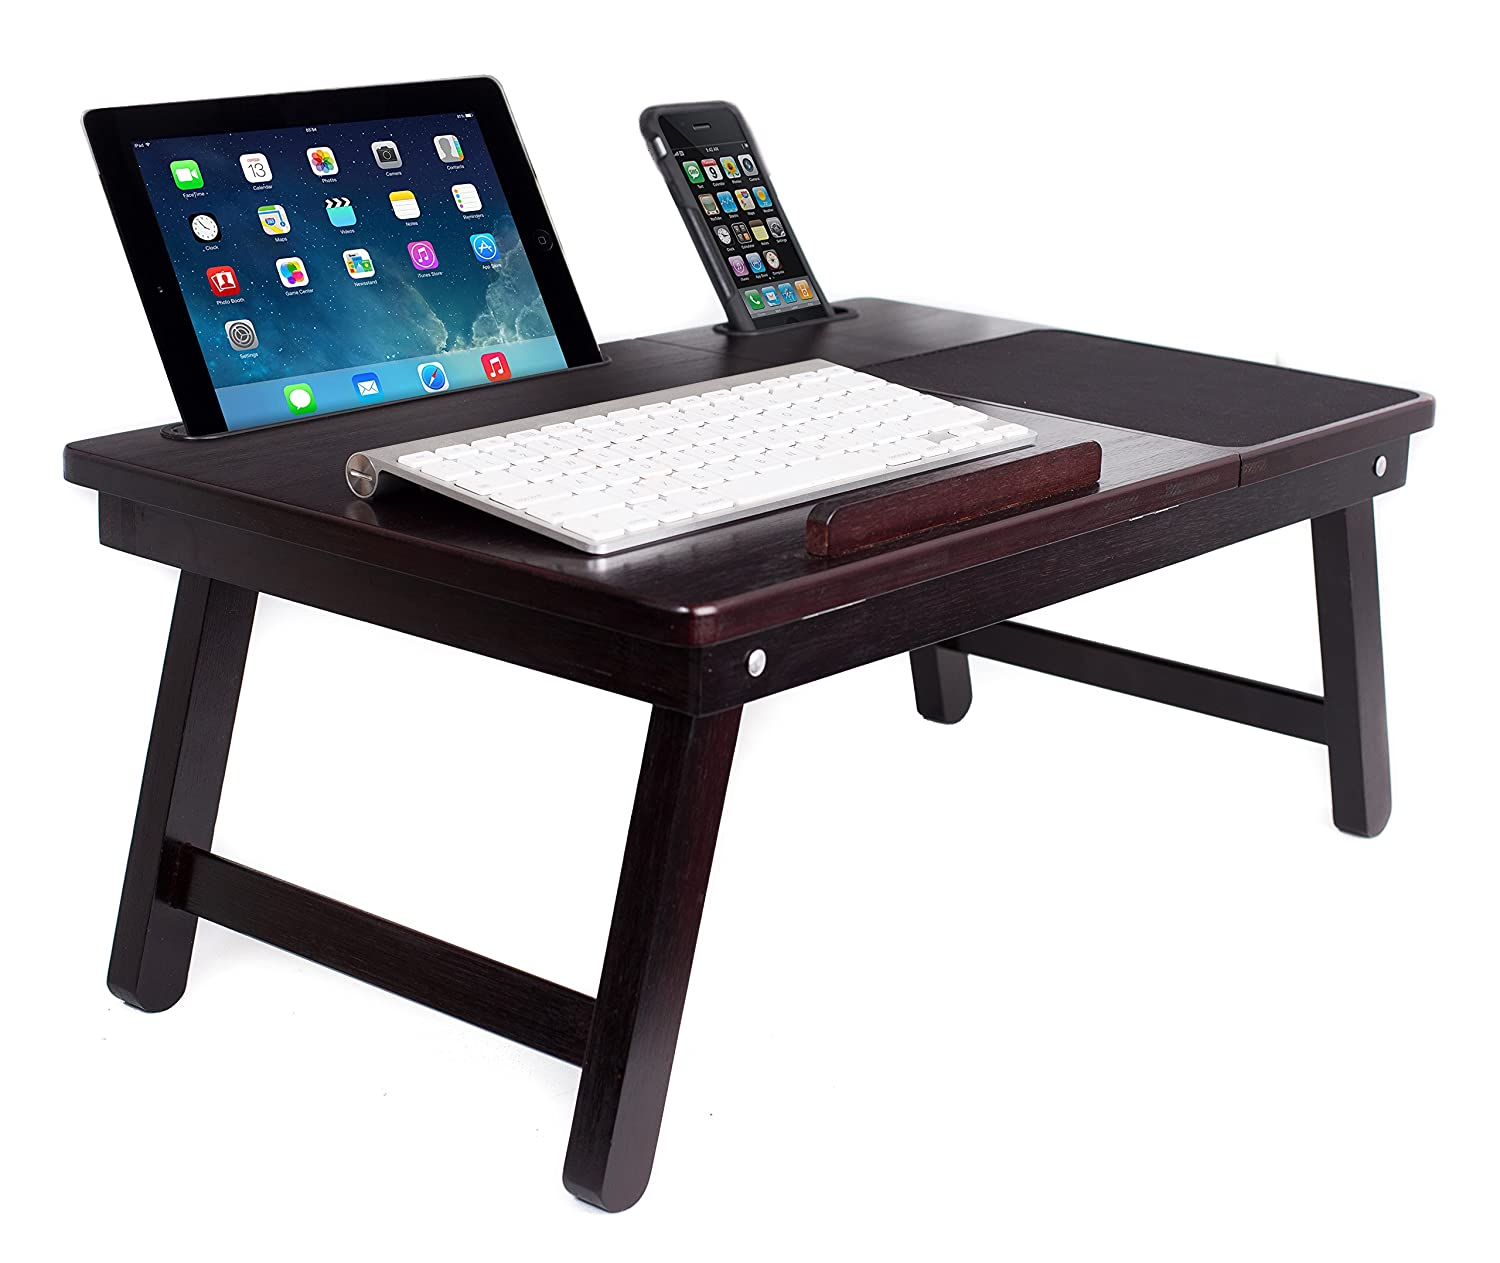 breakfast portable ebay table bed for tray in desk laptop computer workstation serving itm